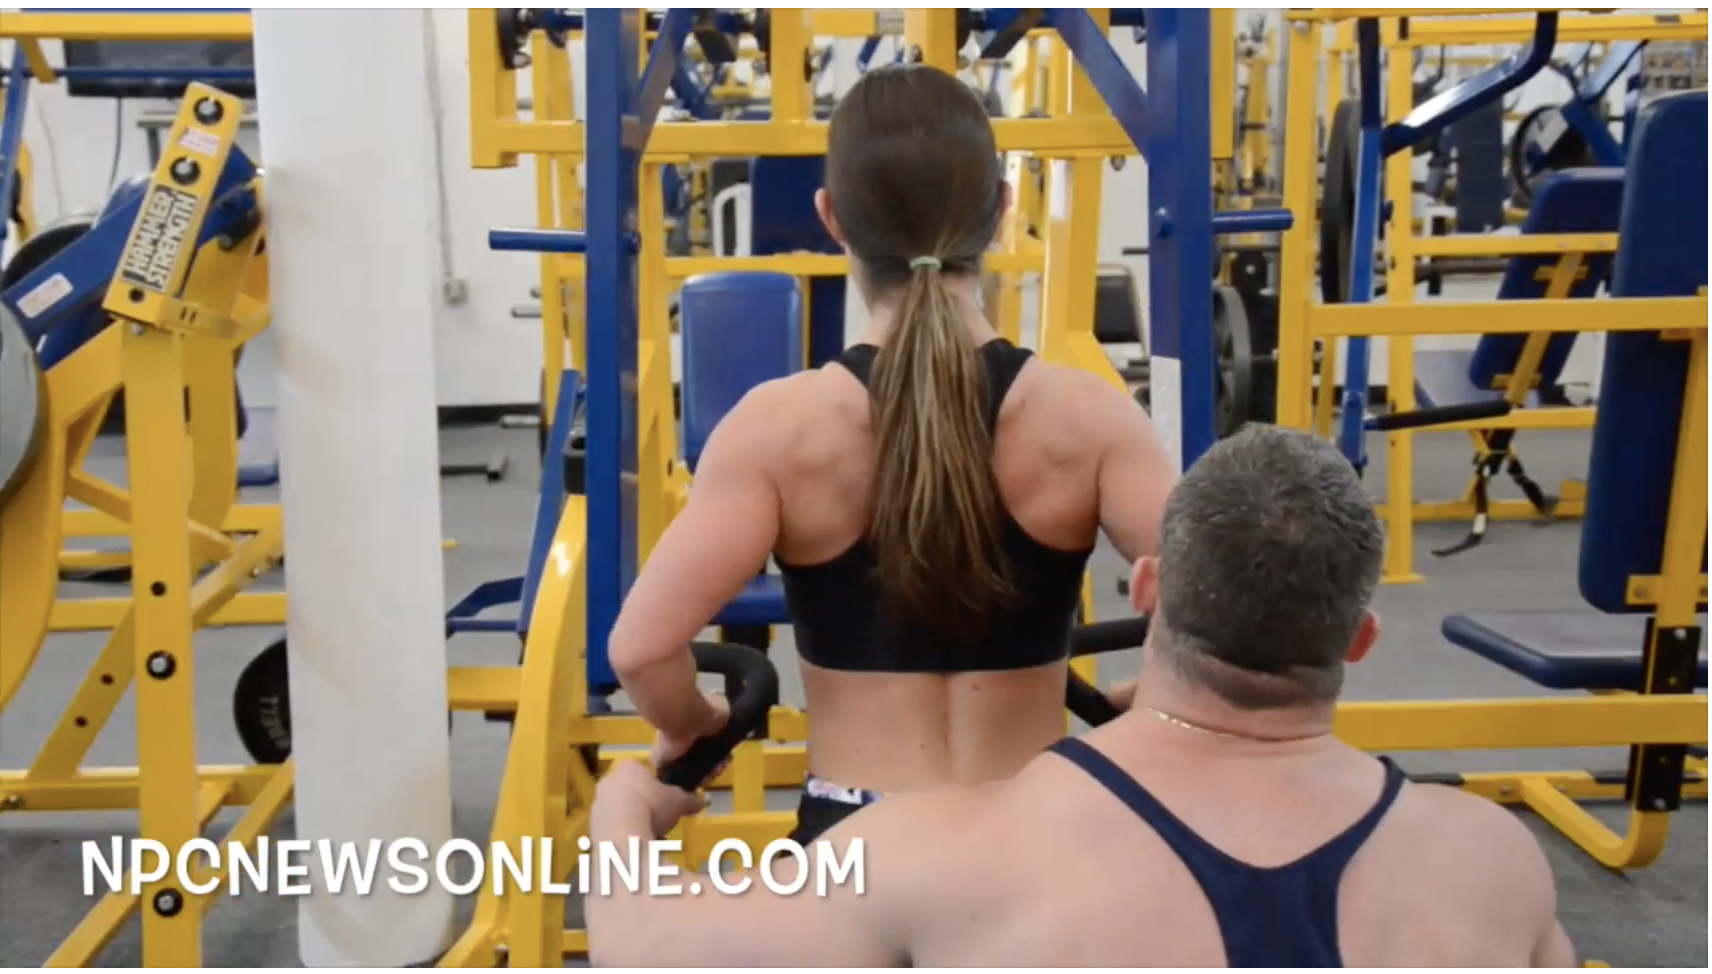 IFBB Fitness Pro Sara Kovach Back Workout Video With Bill Sienerth